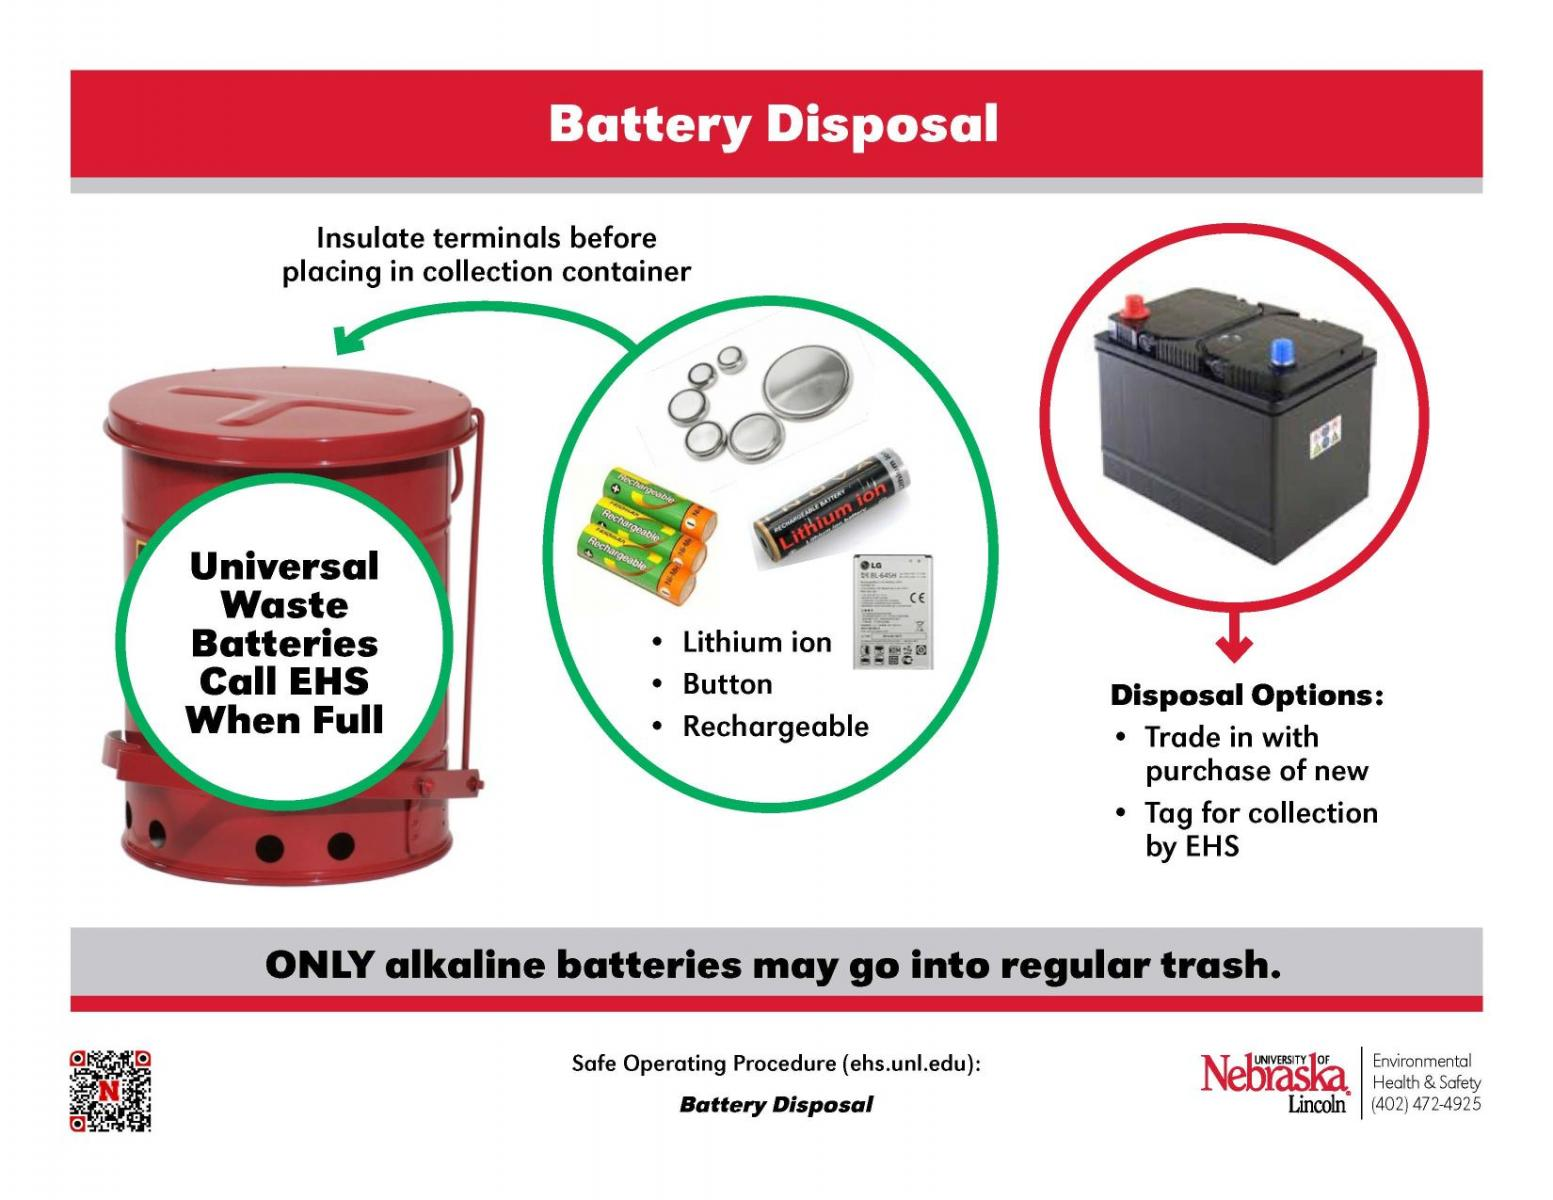 poster describing how to properly dispose different types of batteries